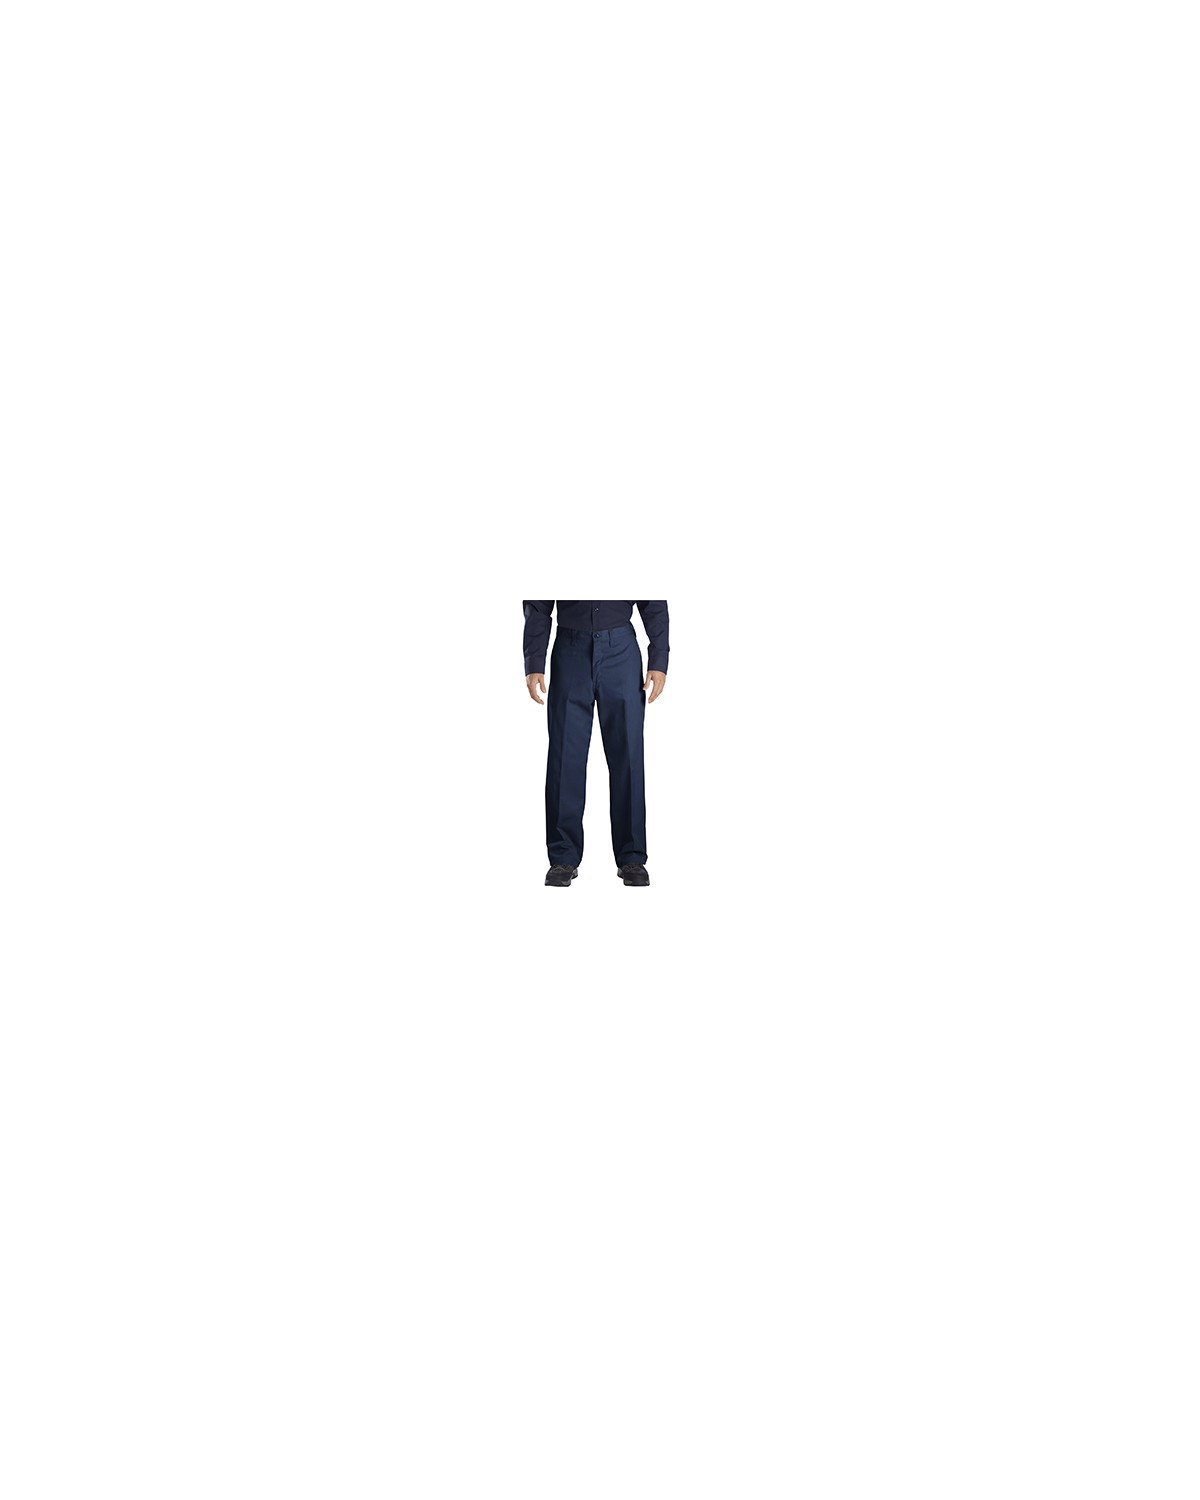 LP812 Dickies DARK NAVY 31